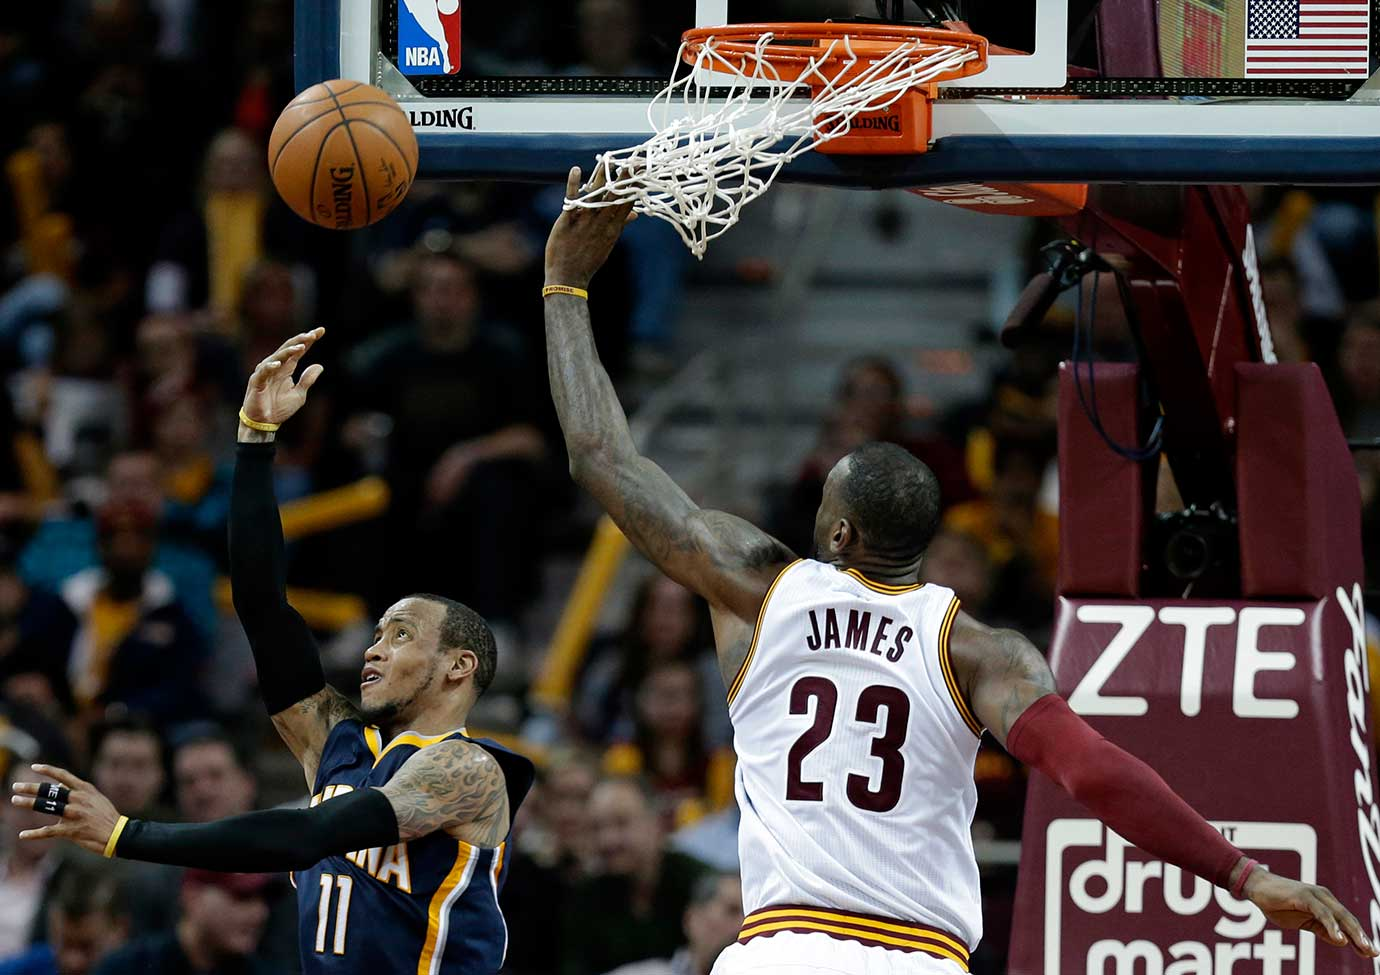 Monta Ellis of the Indiana Pacers drives to the basket against LeBron James.